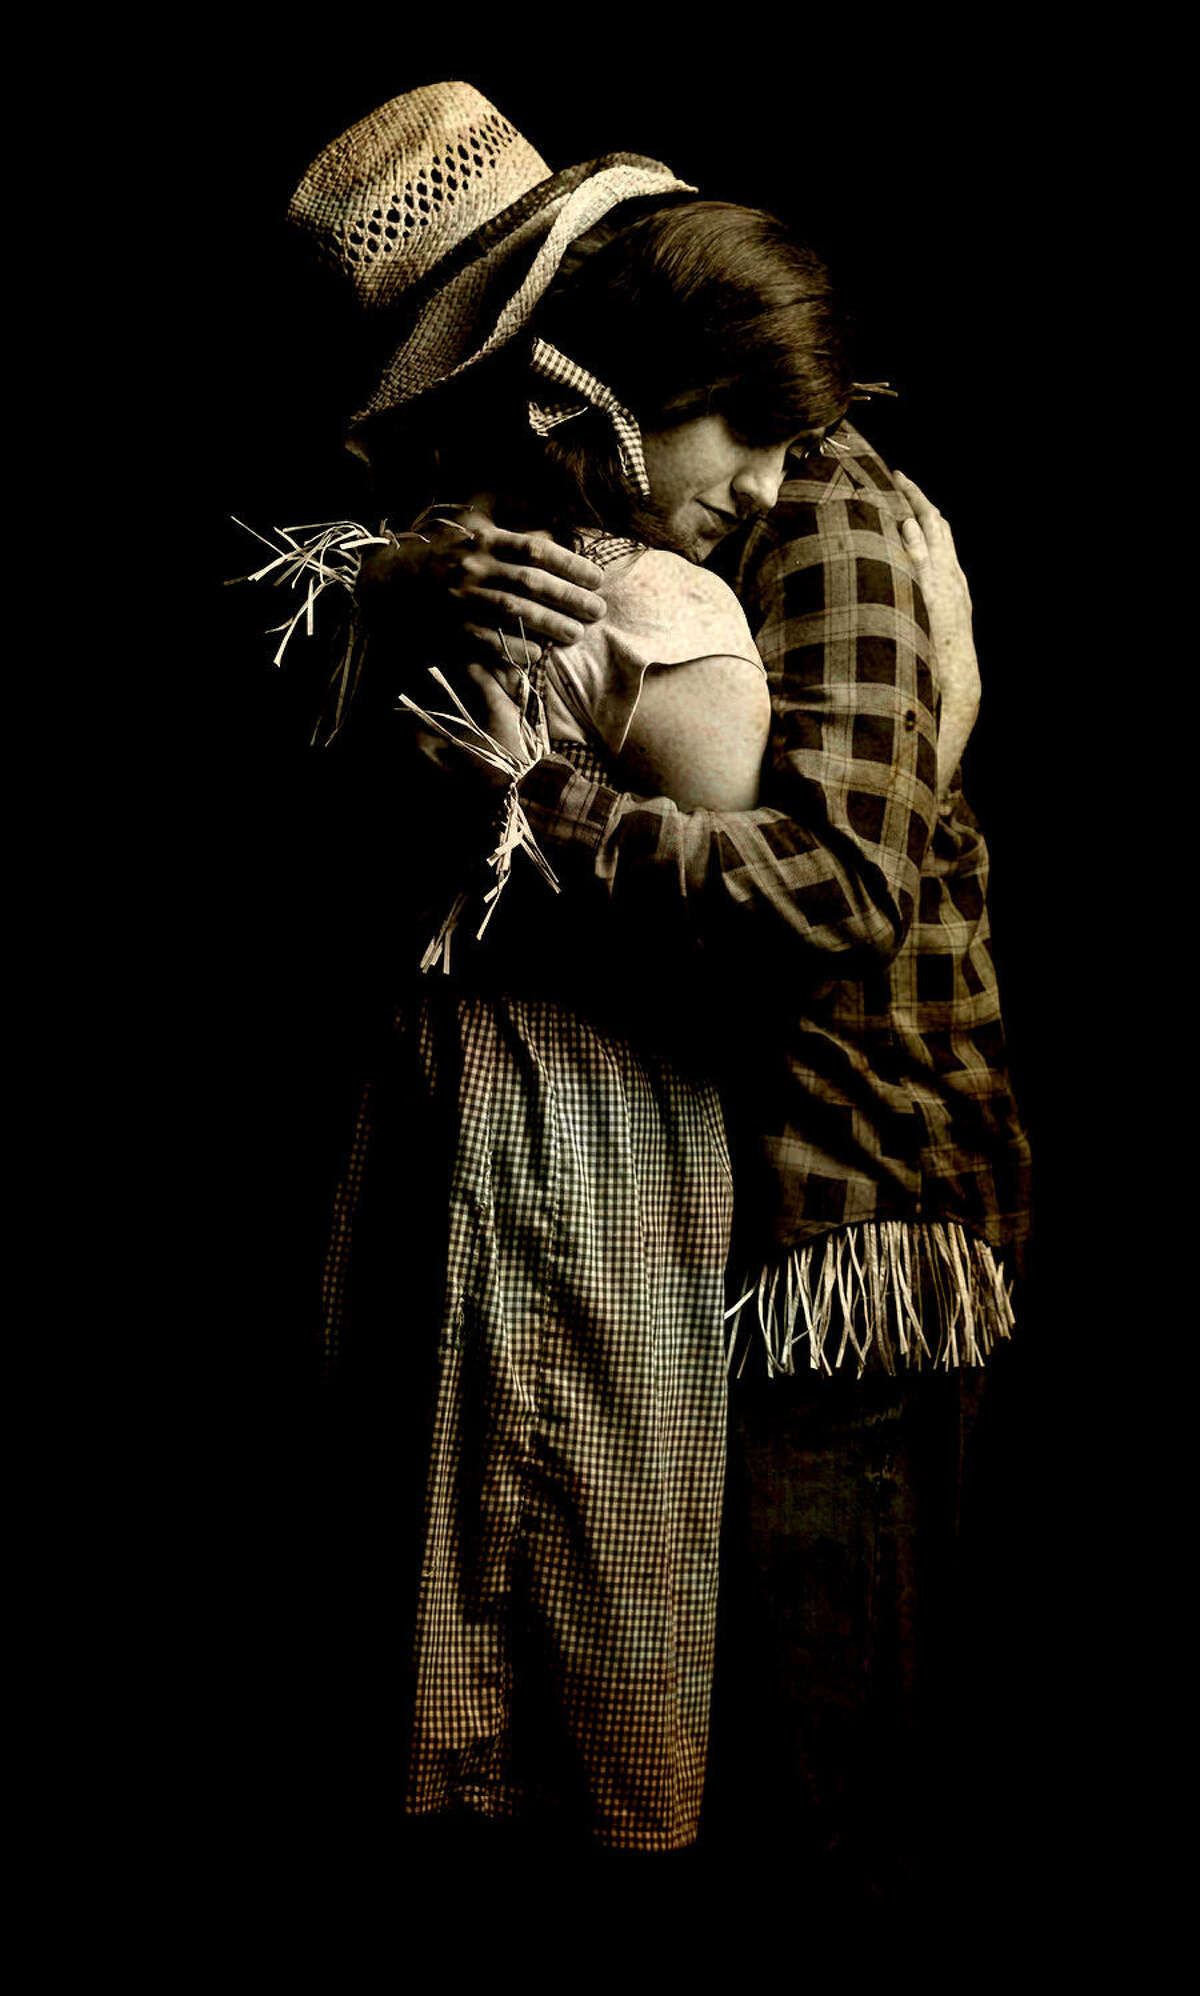 Sophie Bolles plays Dorothy and Justin Bankston plays the Scarecrow in